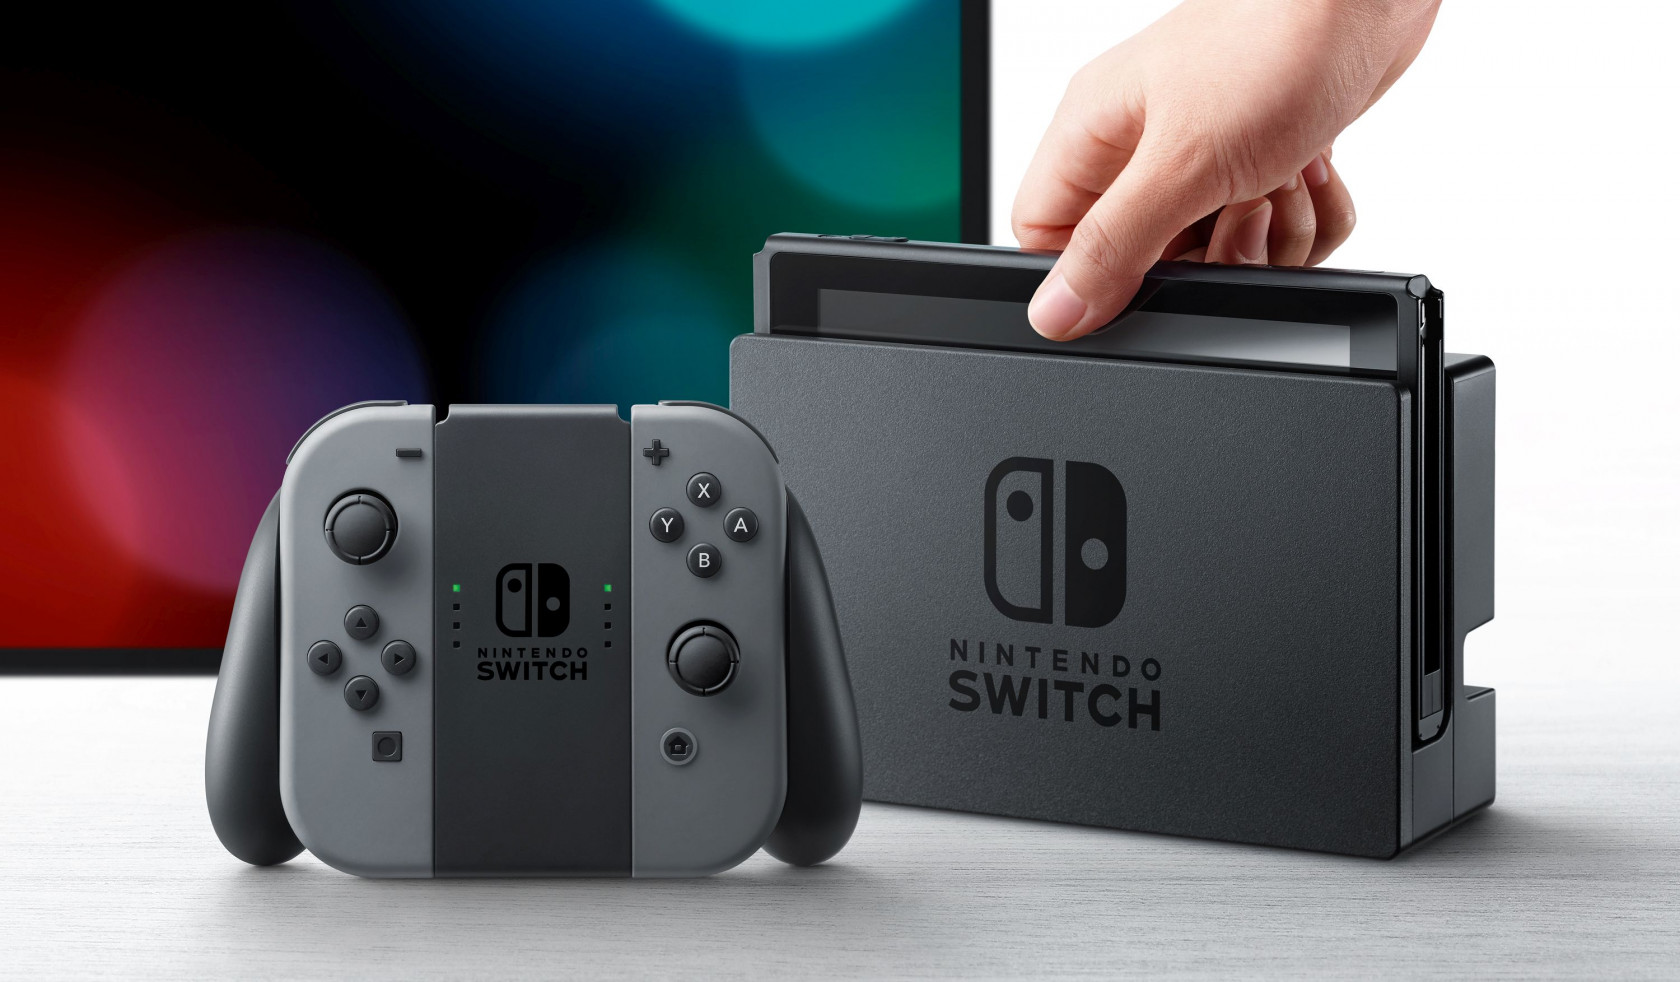 Nintendo Switch Docks: Why you shouldn't buy unofficial third-party models